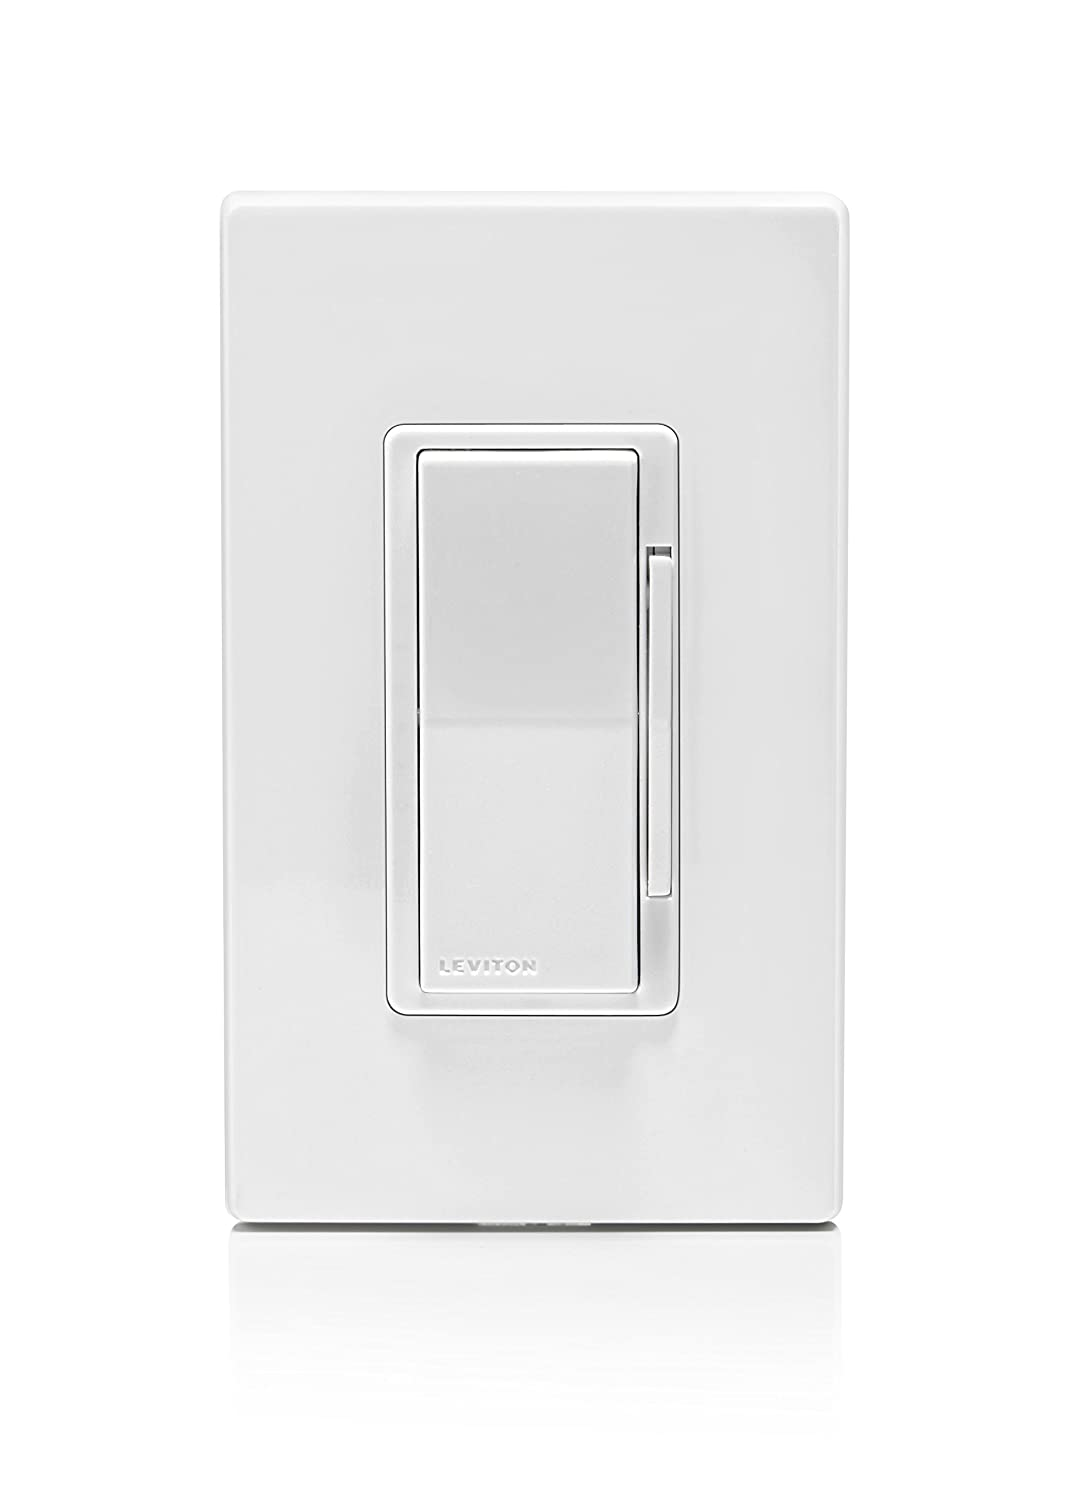 71vbjpDdJ1L._SL1500_ leviton ddl06 blz decora digital 300w led cfl, 600w incandescent Leviton Outlet Wiring Diagram at bayanpartner.co